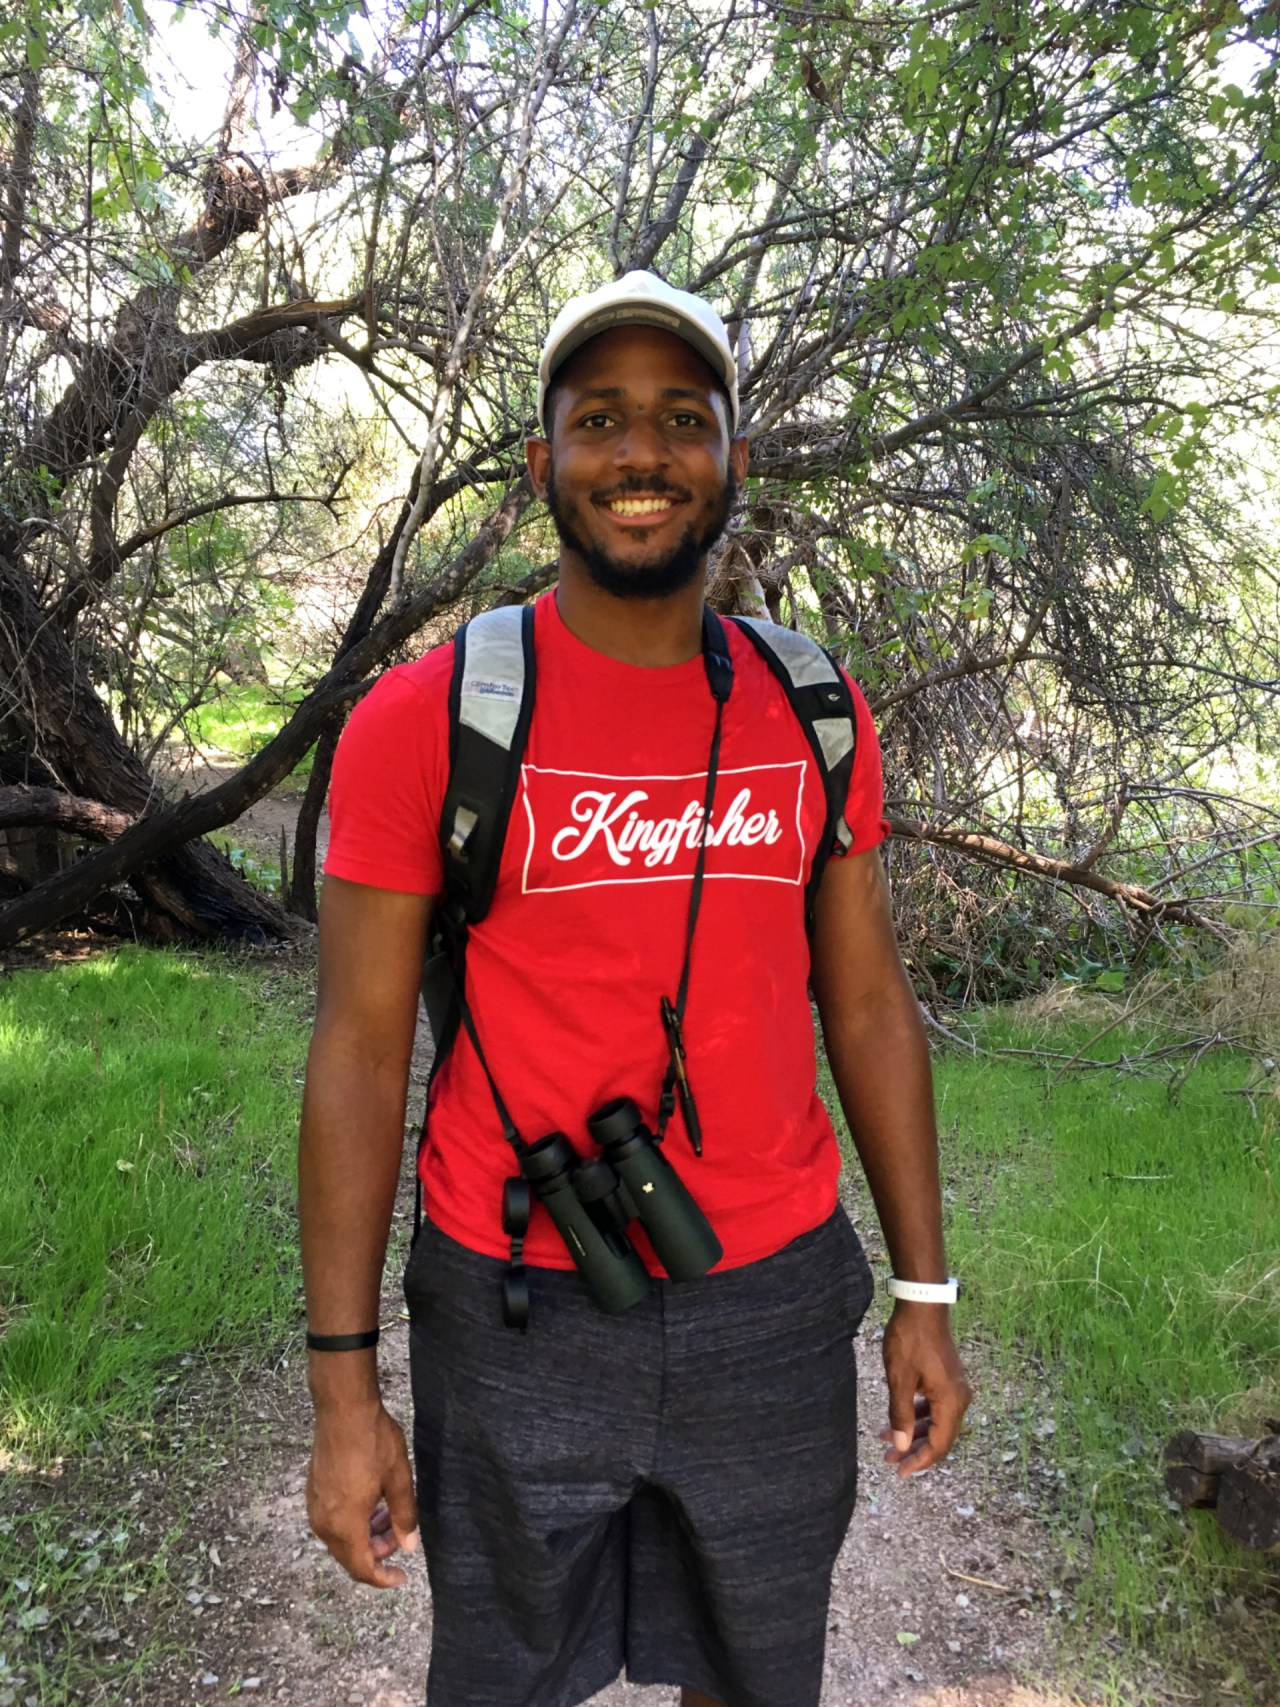 """Black man with beard in white hat, red shirt that reads, """"Kingfisher"""" in black shorts and binoculars."""